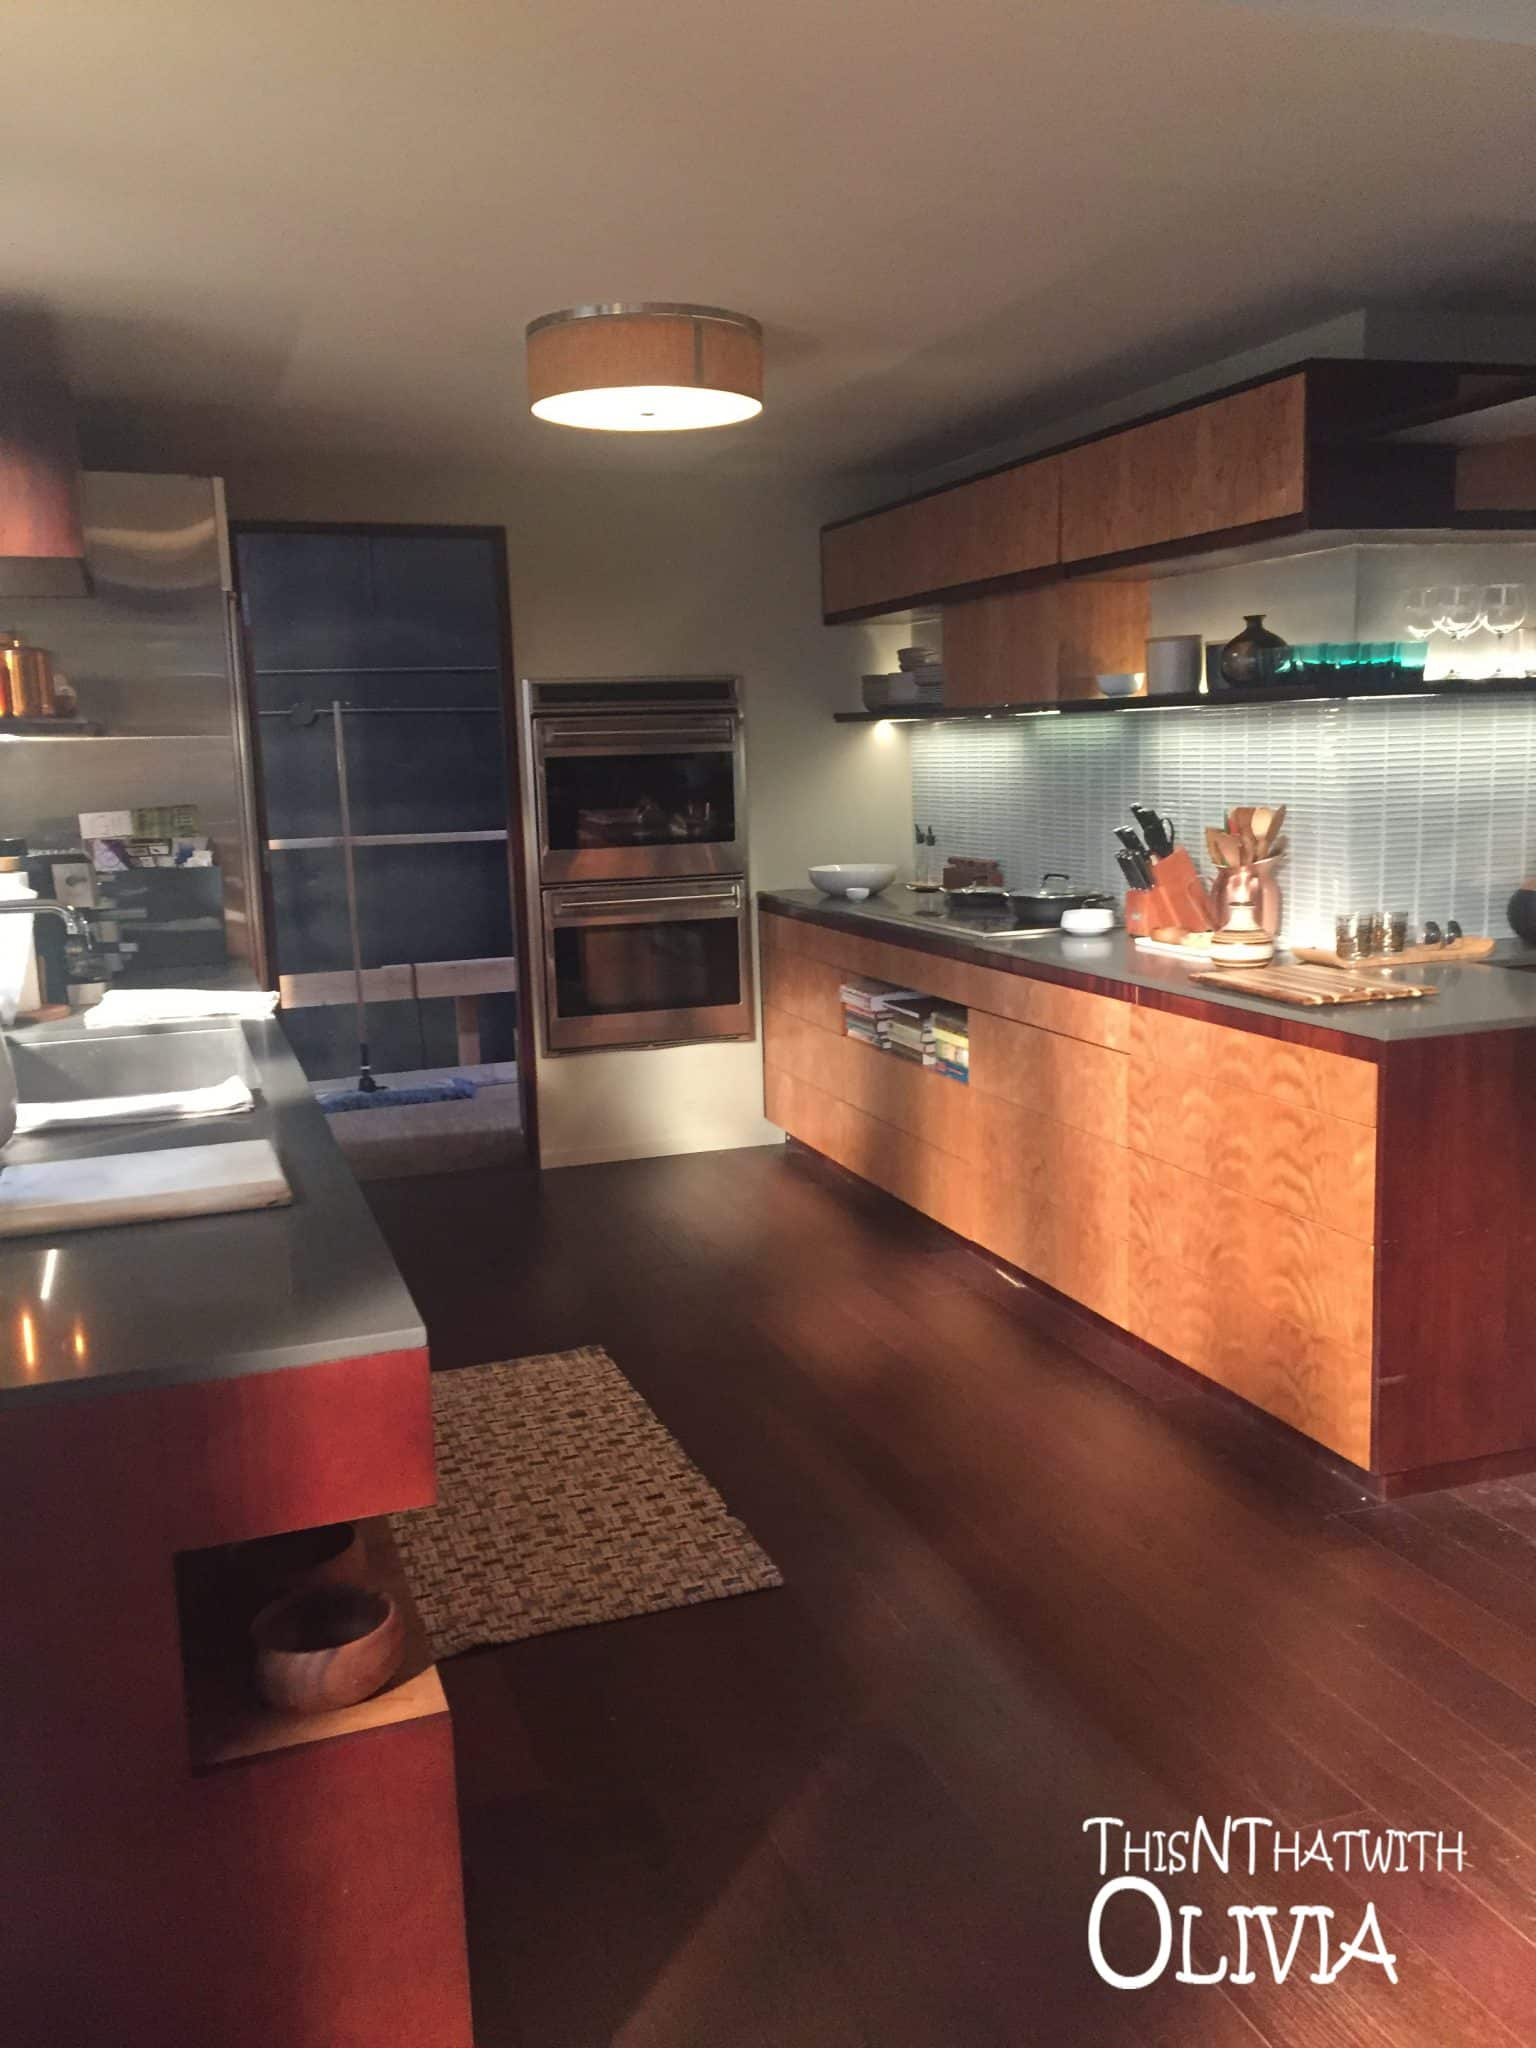 Kitchen on the set of The Catch